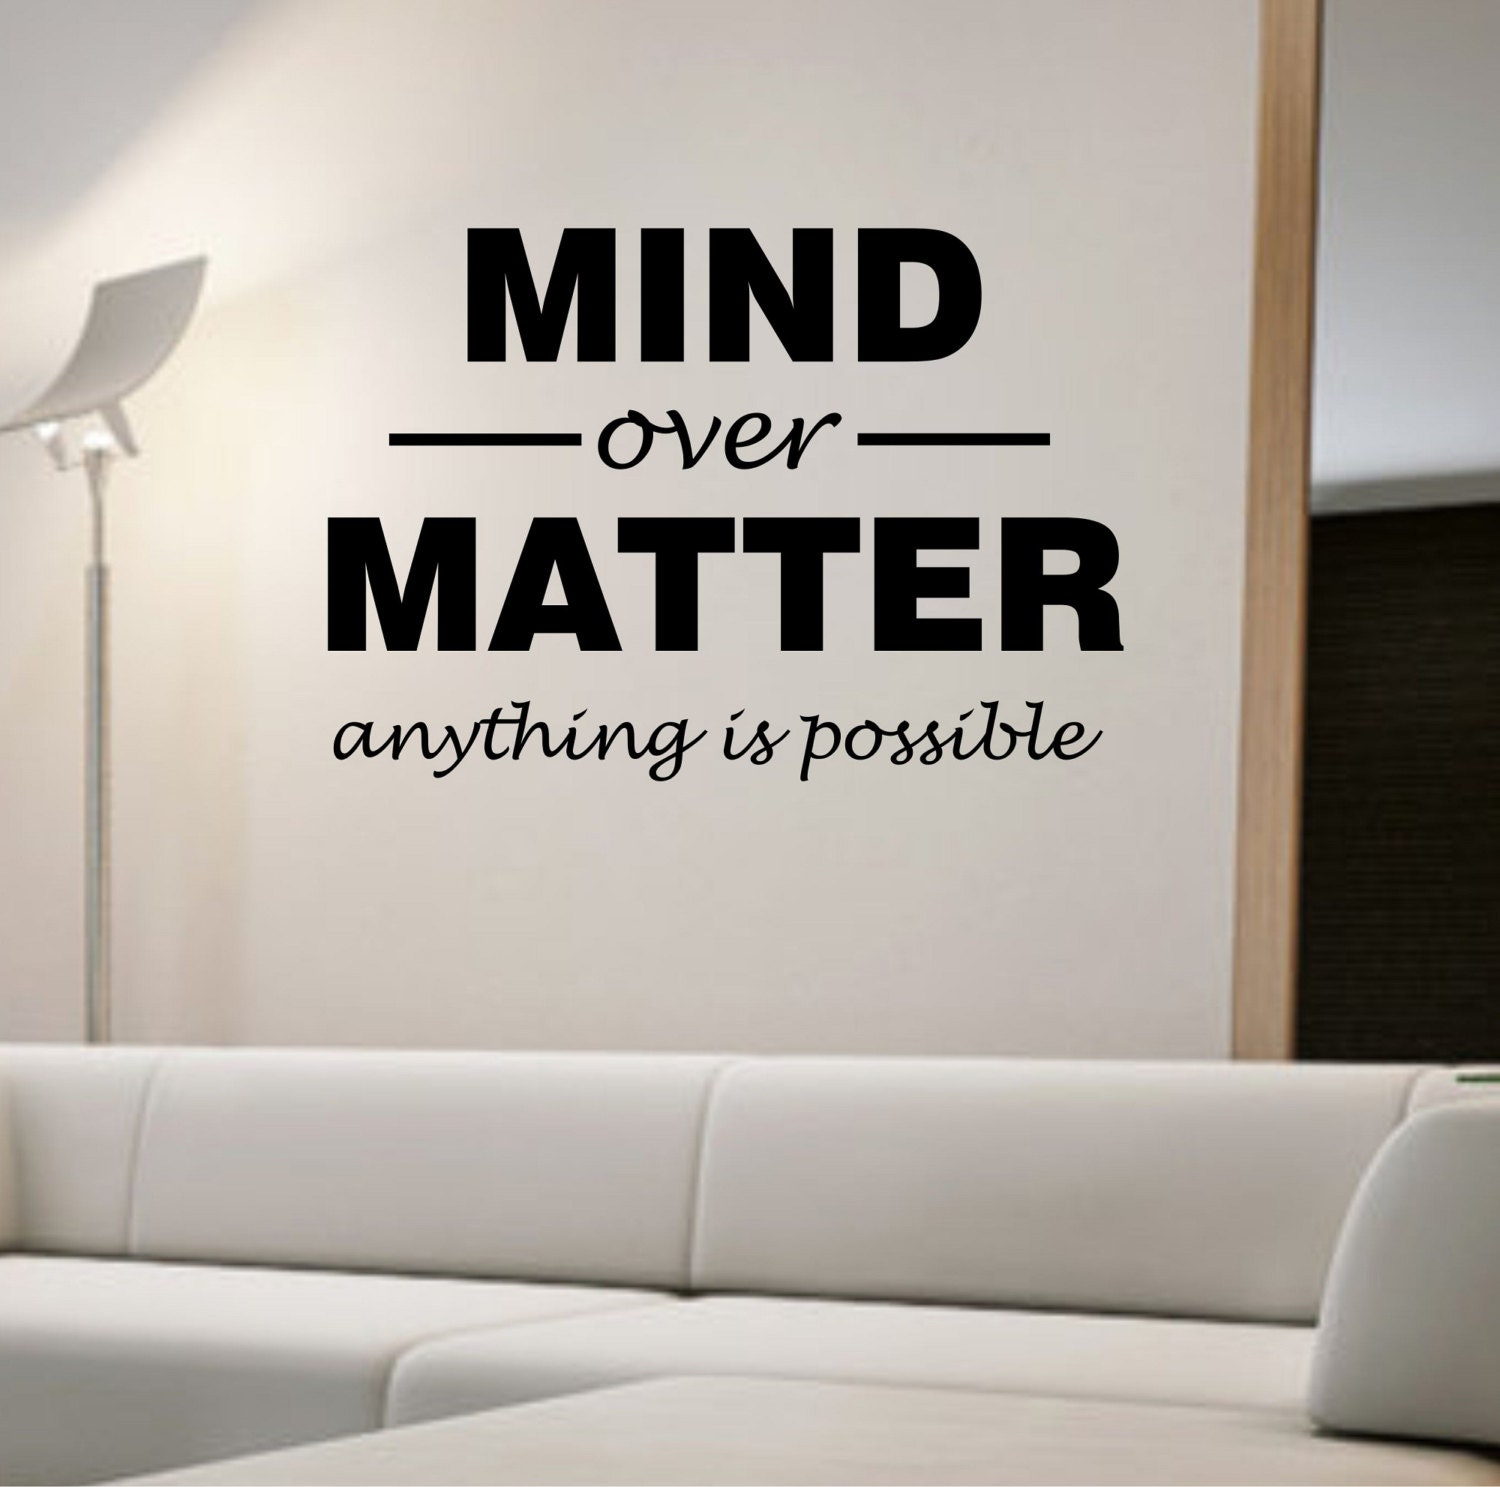 mind over matter These thoughts have definitely passed through your brain each time you've hit  the gym allow us to help push those mental limits in the mind over matter crew.